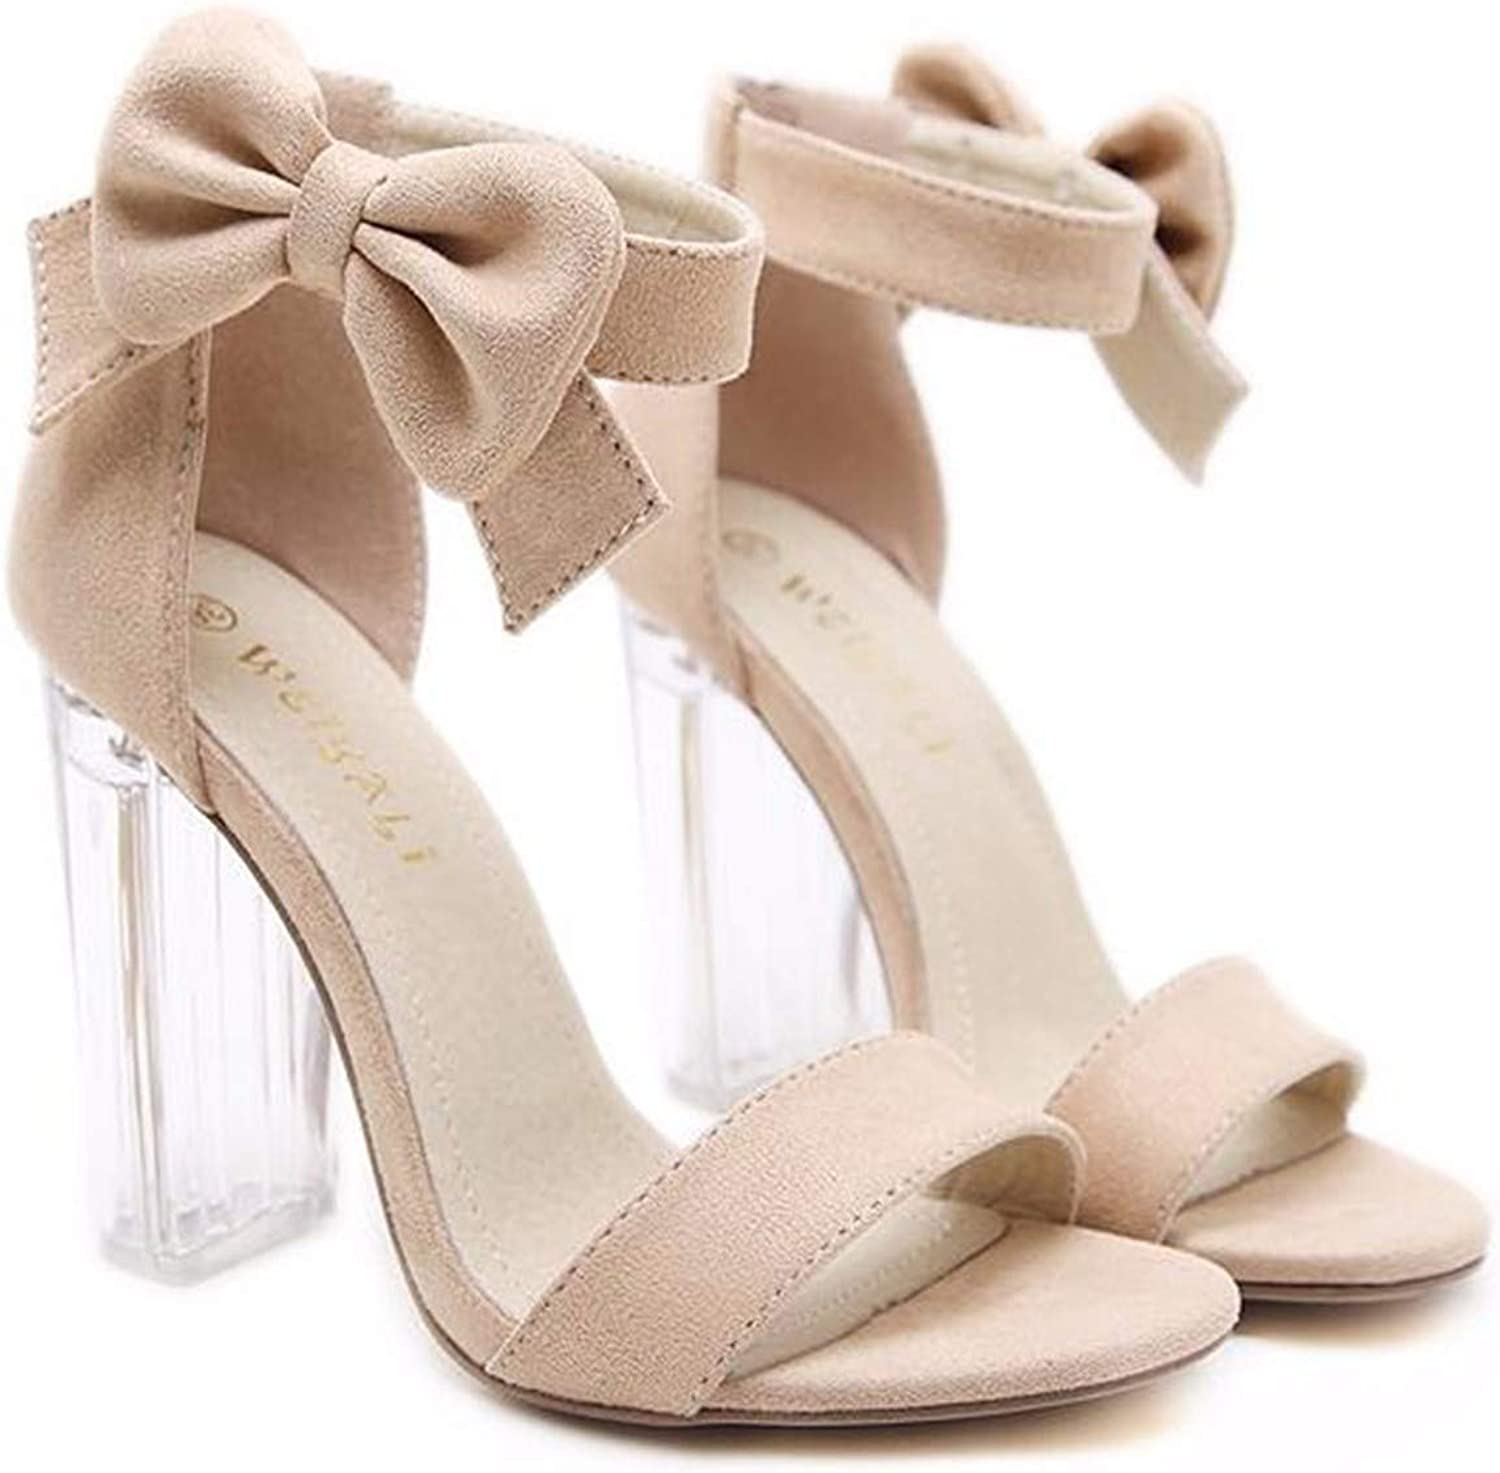 GTVERNH Women's shoes Fashion Buckles Bow Tie Crystal Heel 11Cm High Heel Sandals Elegant Temperament Toes Women's shoes.